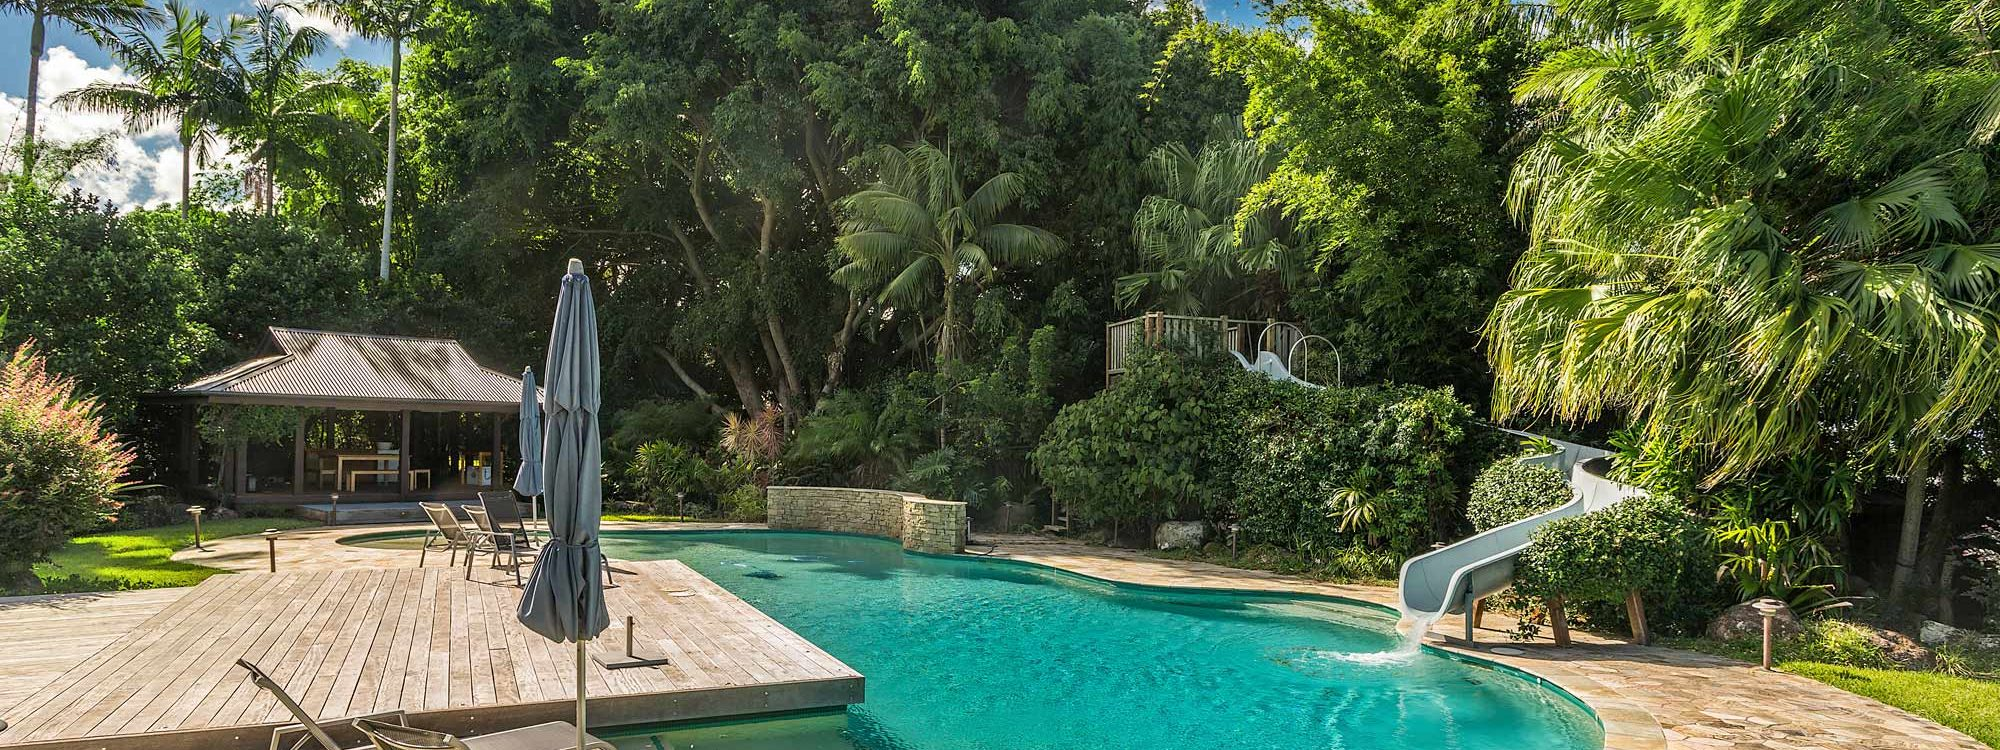 Stone and Grove - Byron Bay - Ewingsdale - Pool with waterslide